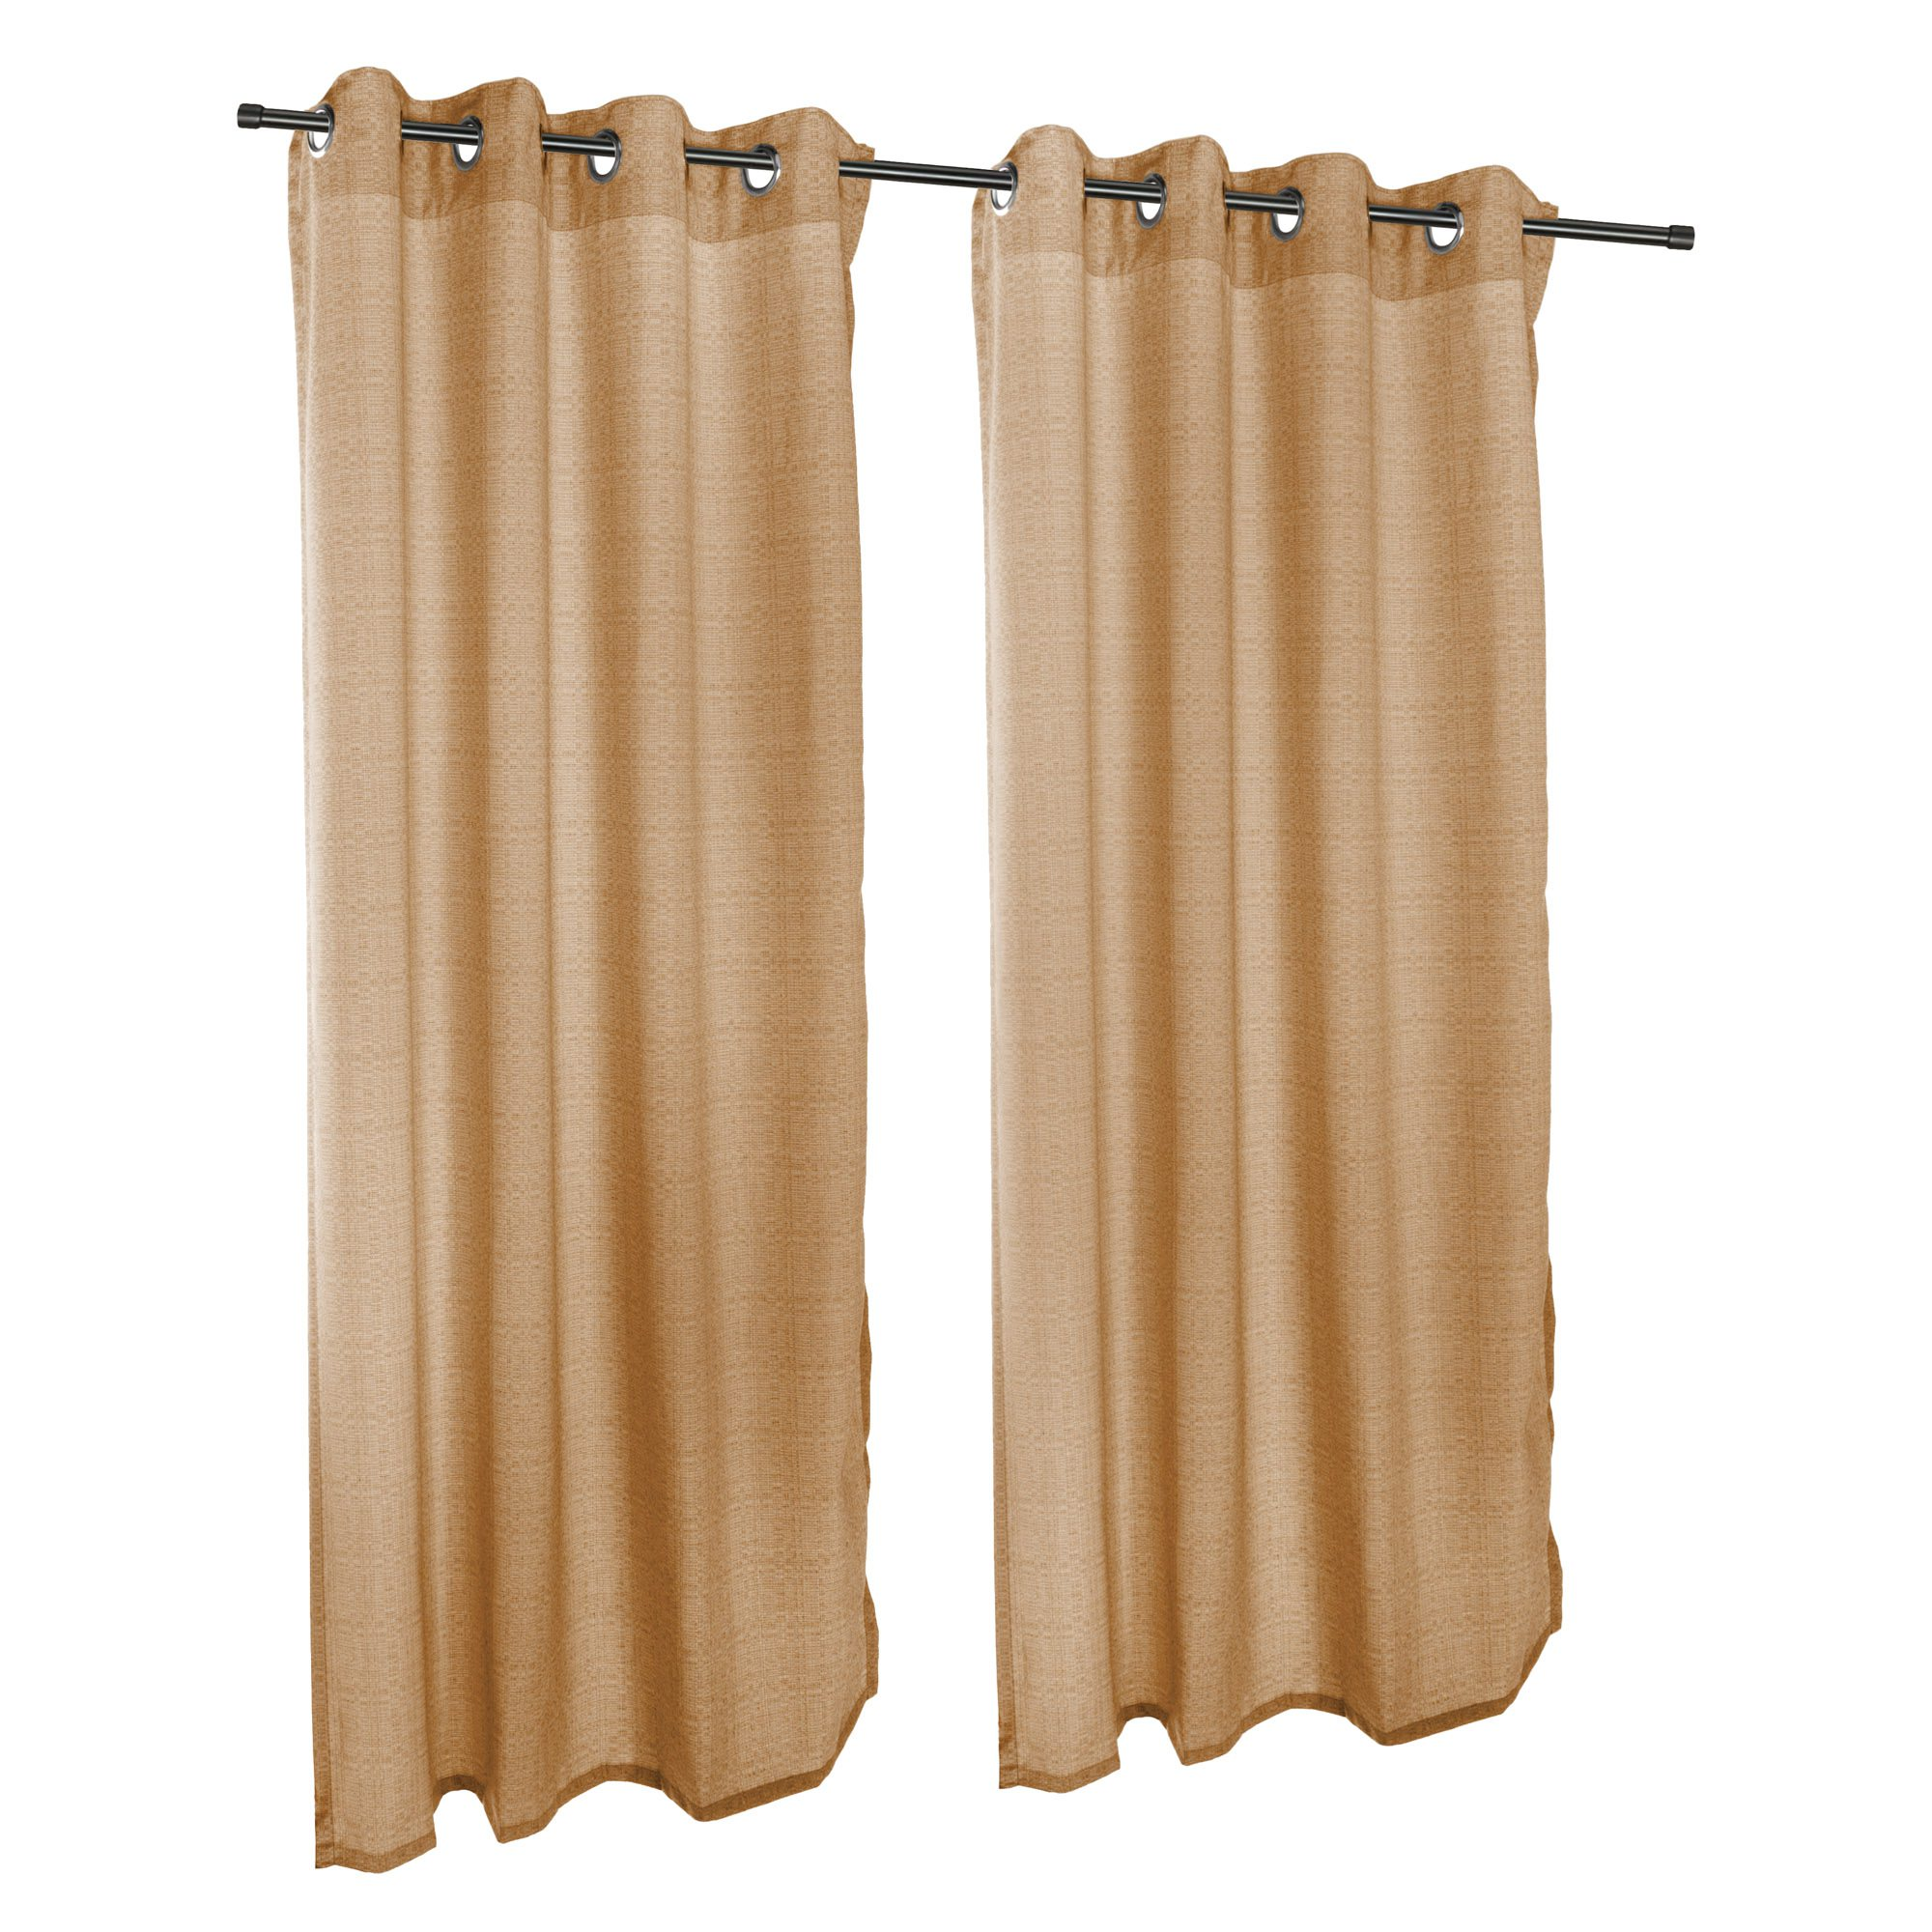 lined curtains pin makeover subtle sleek grommets horizontal panels grommet with curtain a gotham kenneth chic the cole home give texture reaction your window